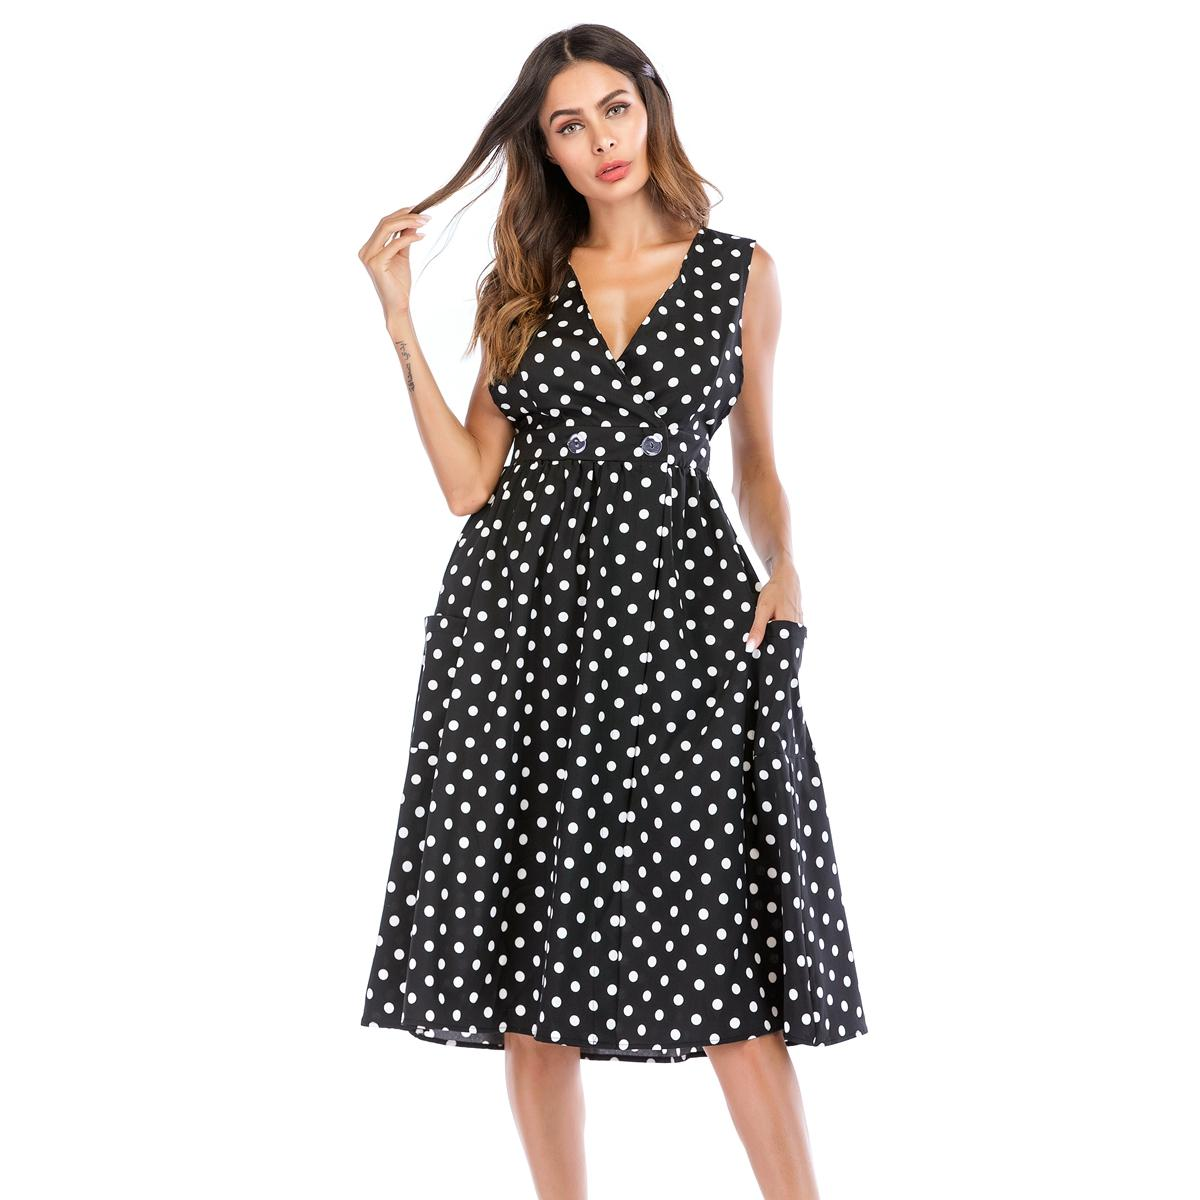 ea21e46276 2019 Evening Dresses For Women Deep V Neck Black Polka Dot Button With  Pockets Sleeveless A Line Party Evening Dinner Summer Dress 8953 From  Clothes zone